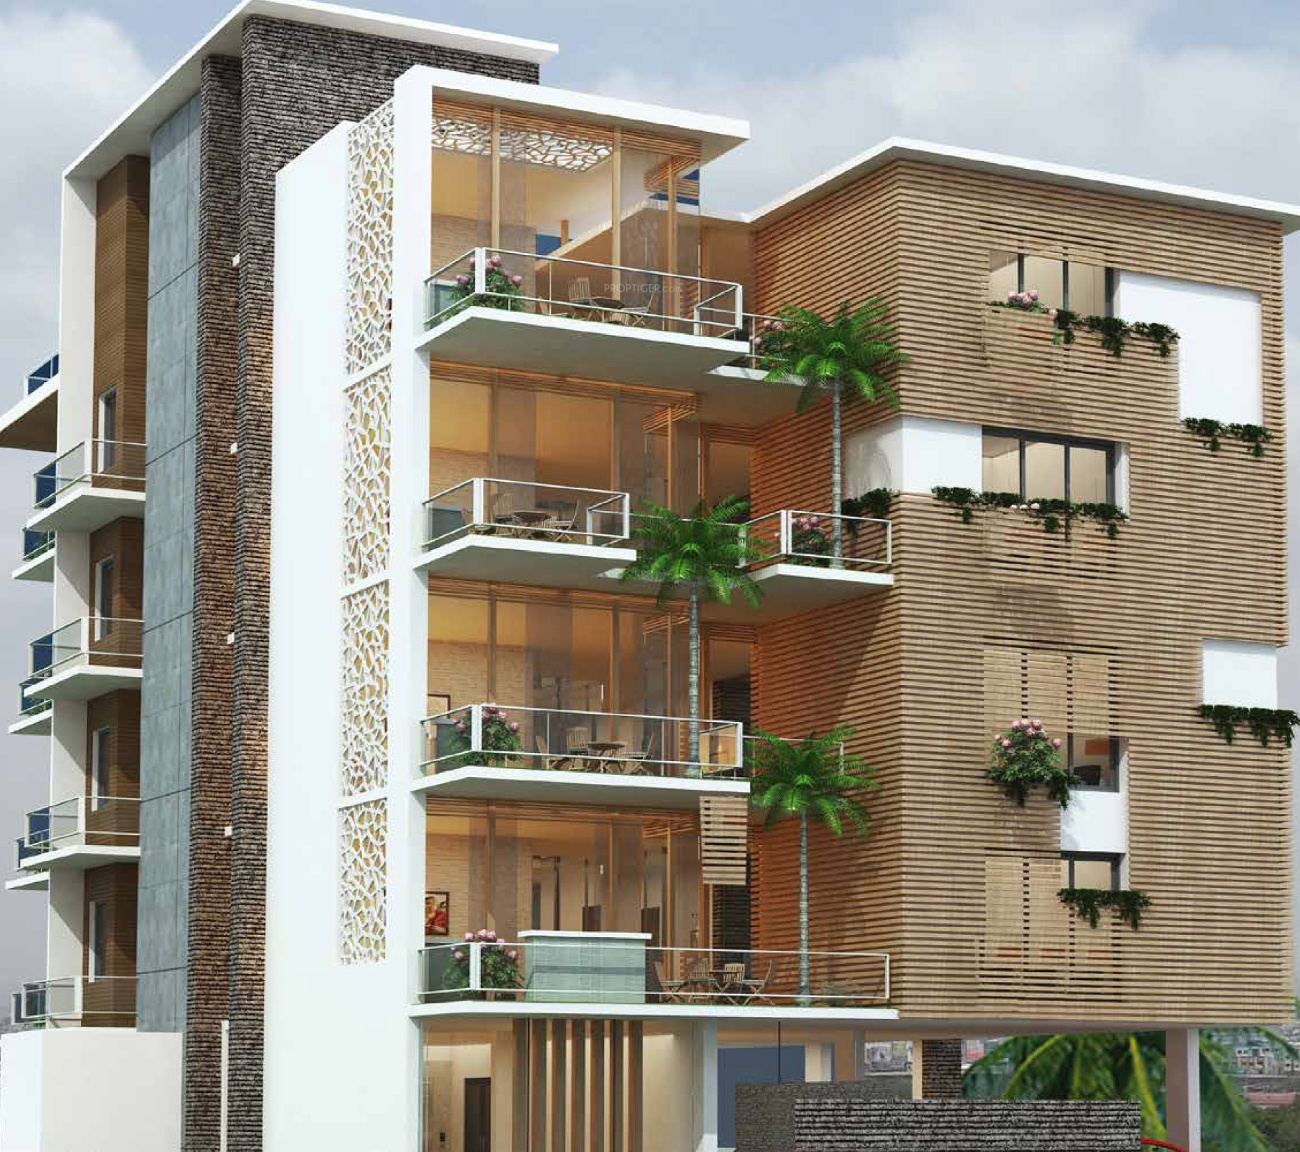 Bedroom Designs From Professionals In Hyderabad  C2NyYXBlLTEtRHBWSGVH: 4200 Sq Ft 3 BHK 3T Apartment For Sale In Pavani Groups